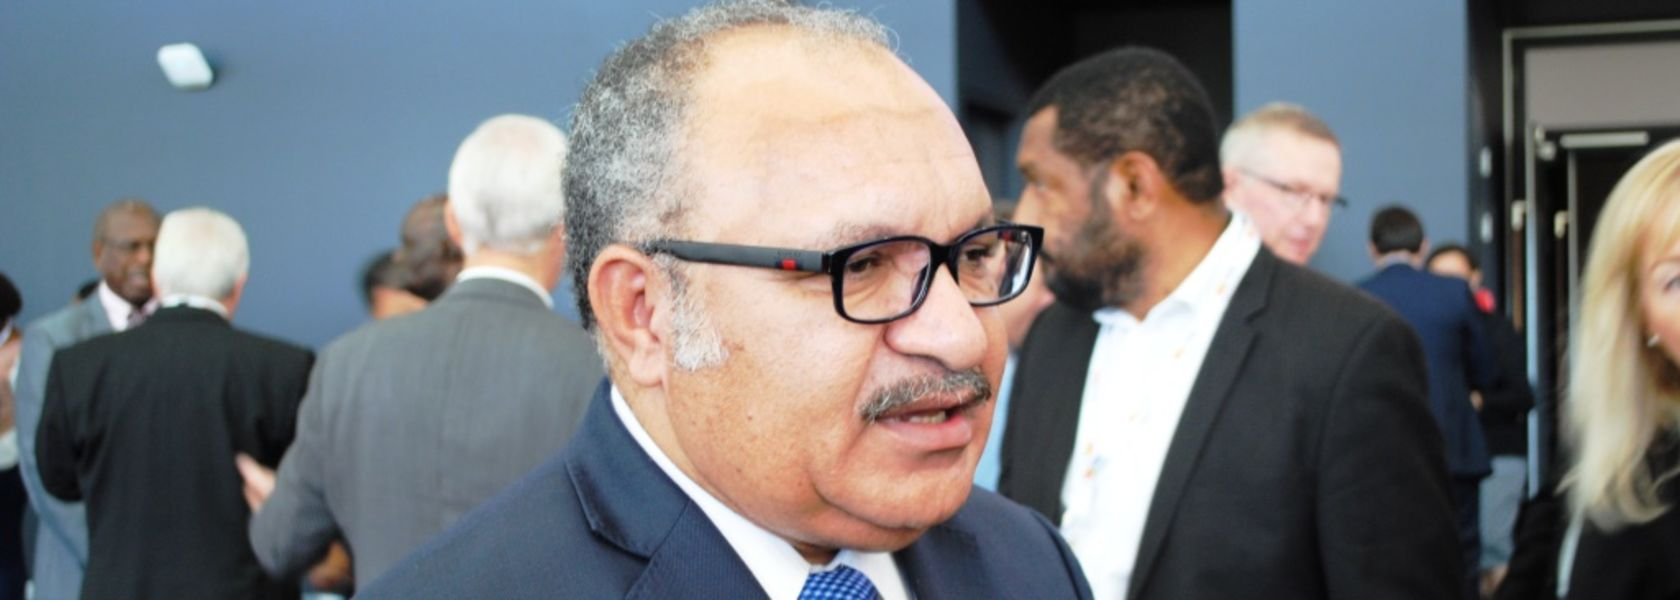 Police withdraw arrest warrant against O'Neill